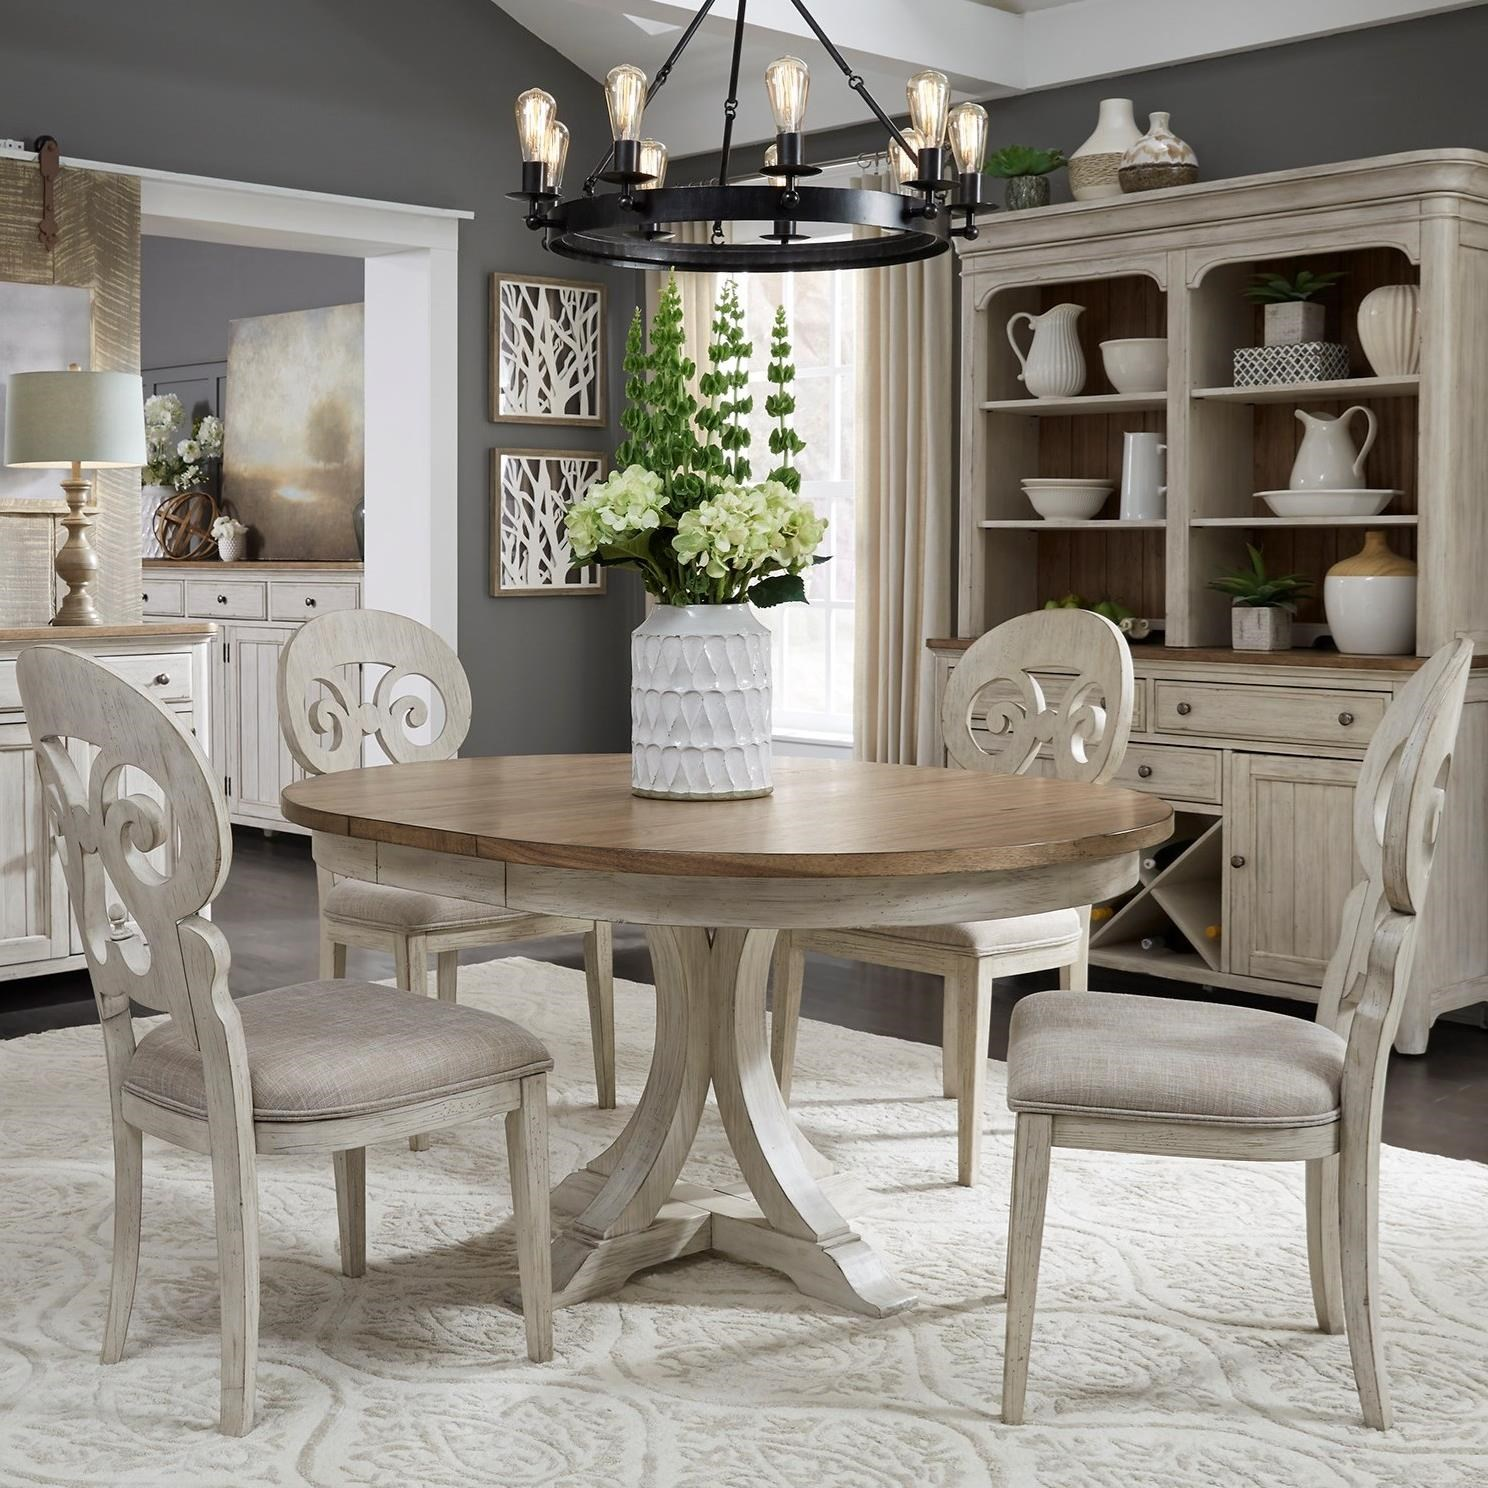 Farmhouse Reimagined 5-Piece Table and Chair Set by Libby at Walker's Furniture